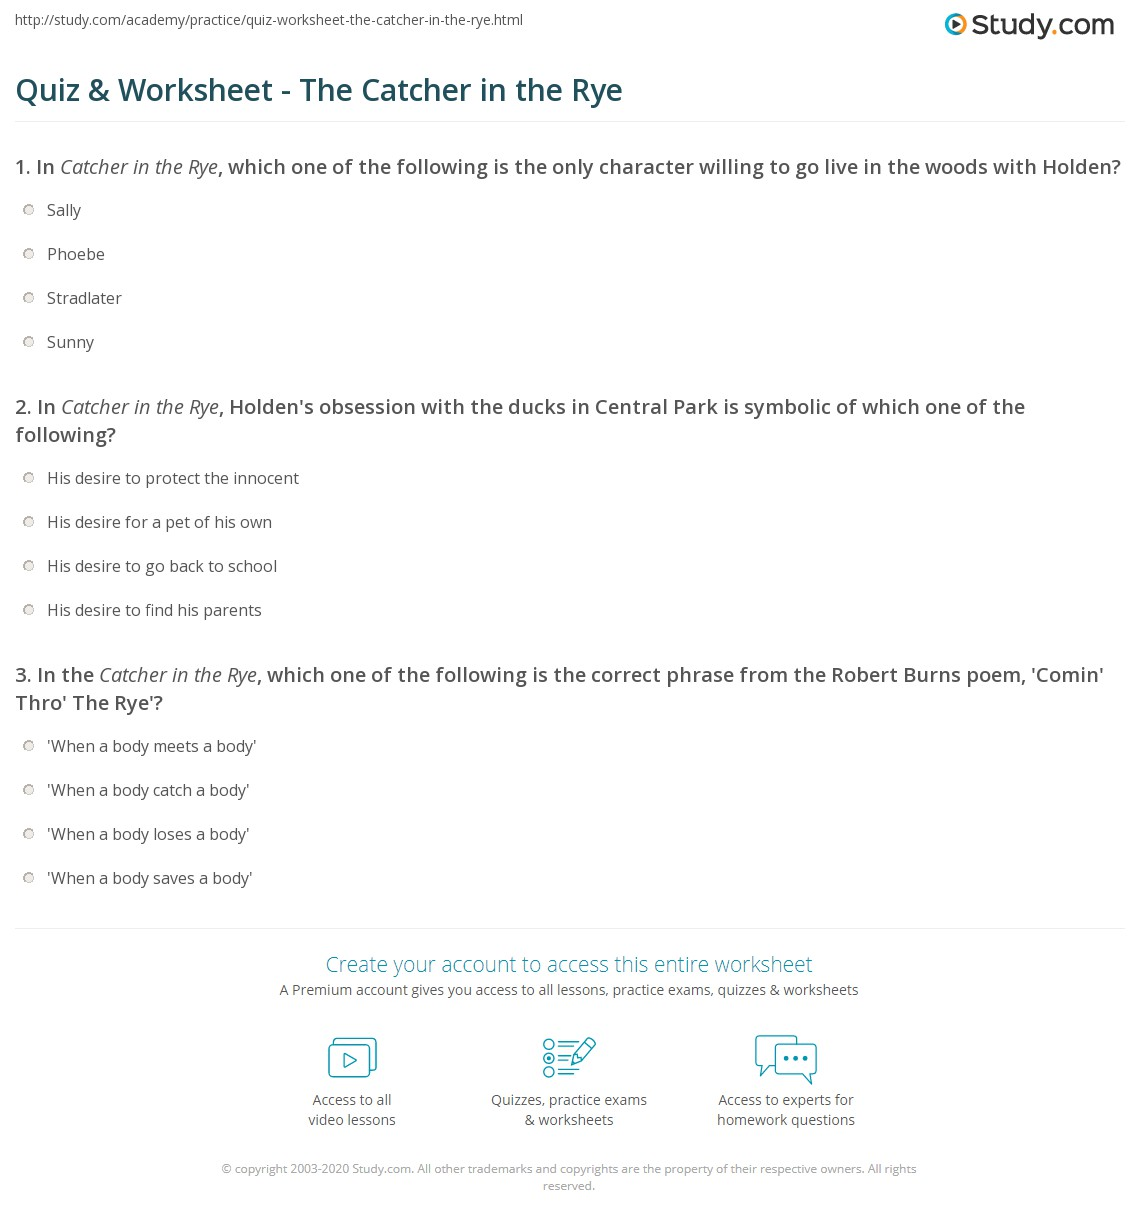 quiz worksheet the catcher in the rye com print the catcher in the rye characters themes symbols worksheet